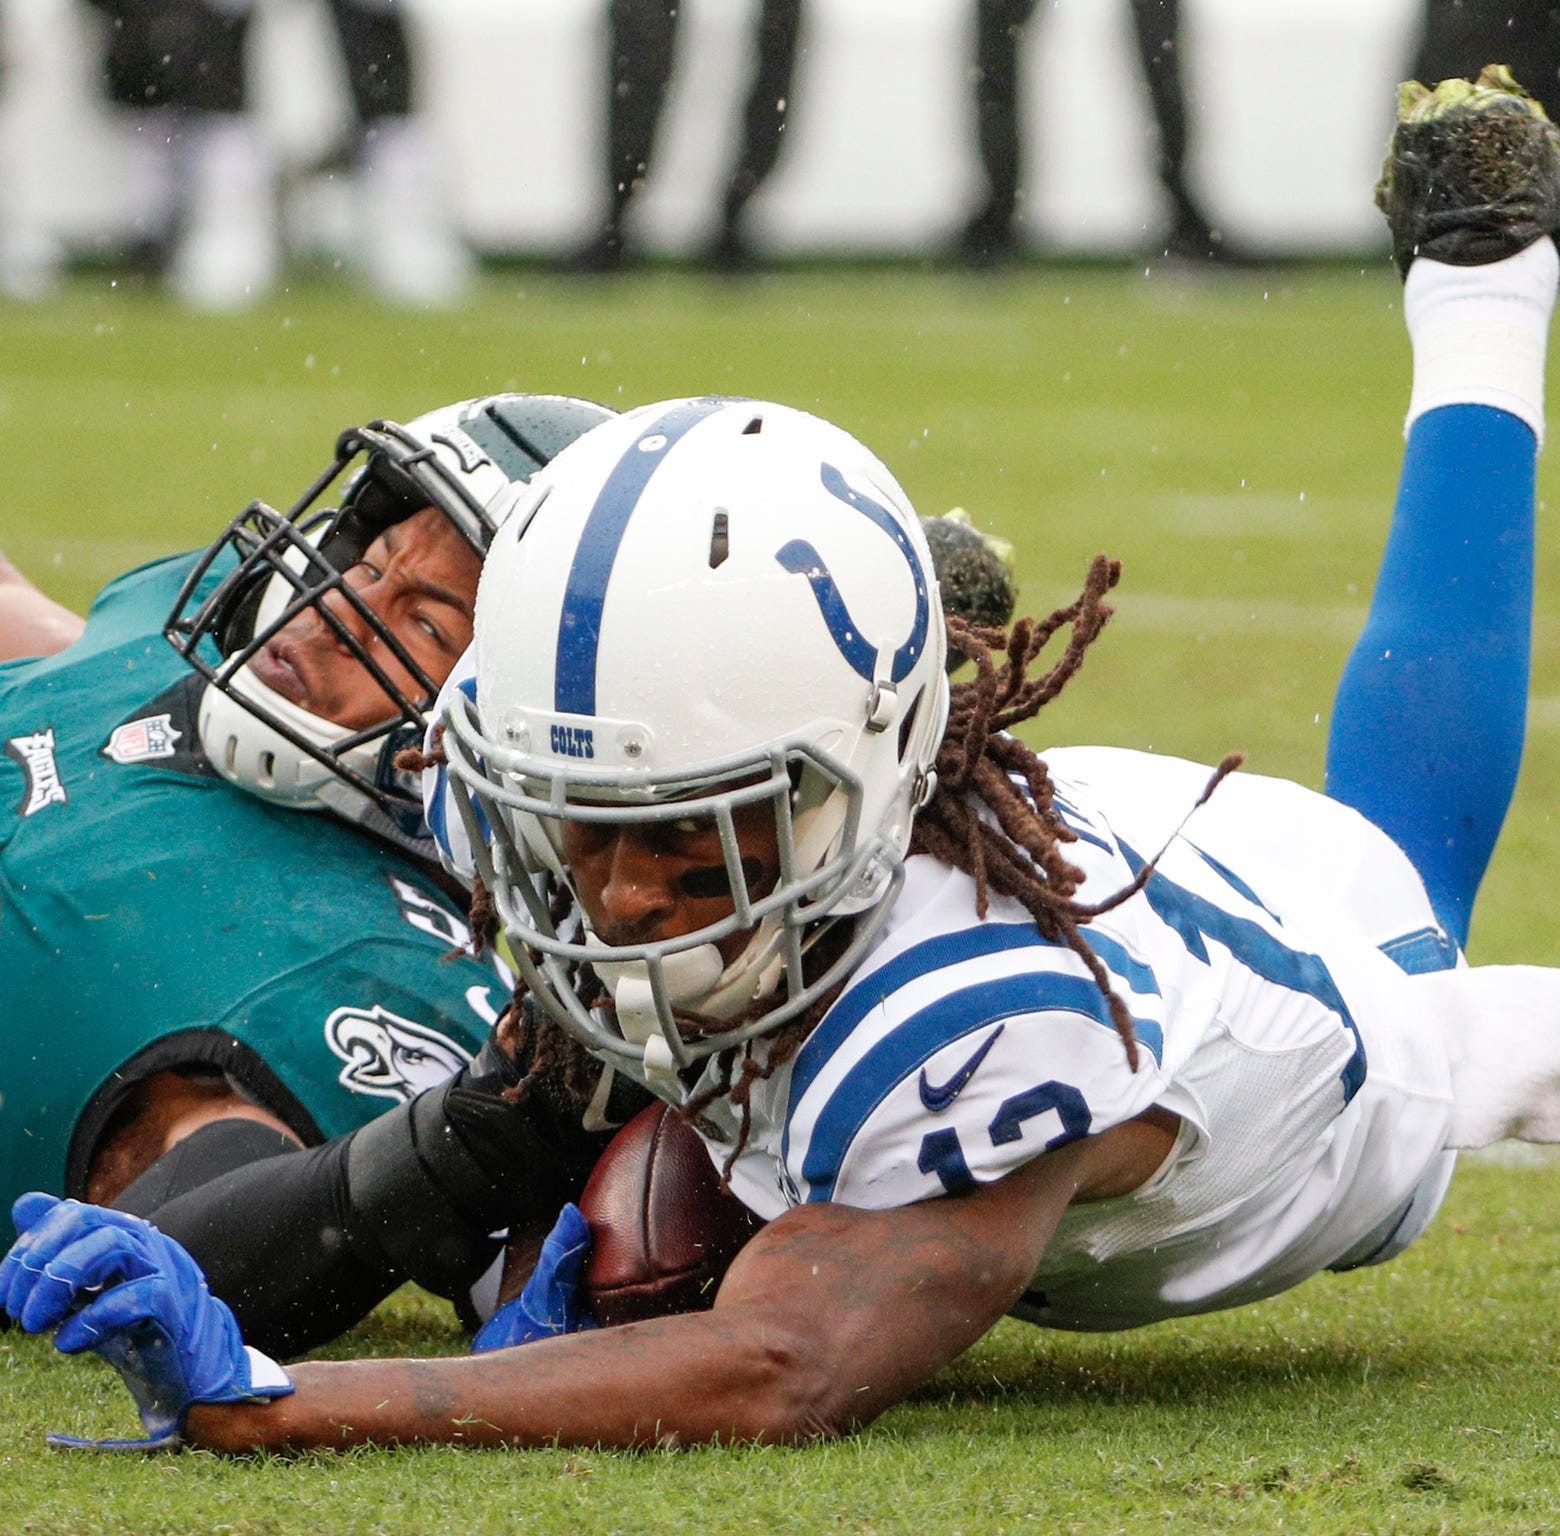 Colts' defense can't get off the field in fourth quarter of 20-16 loss vs. Eagles